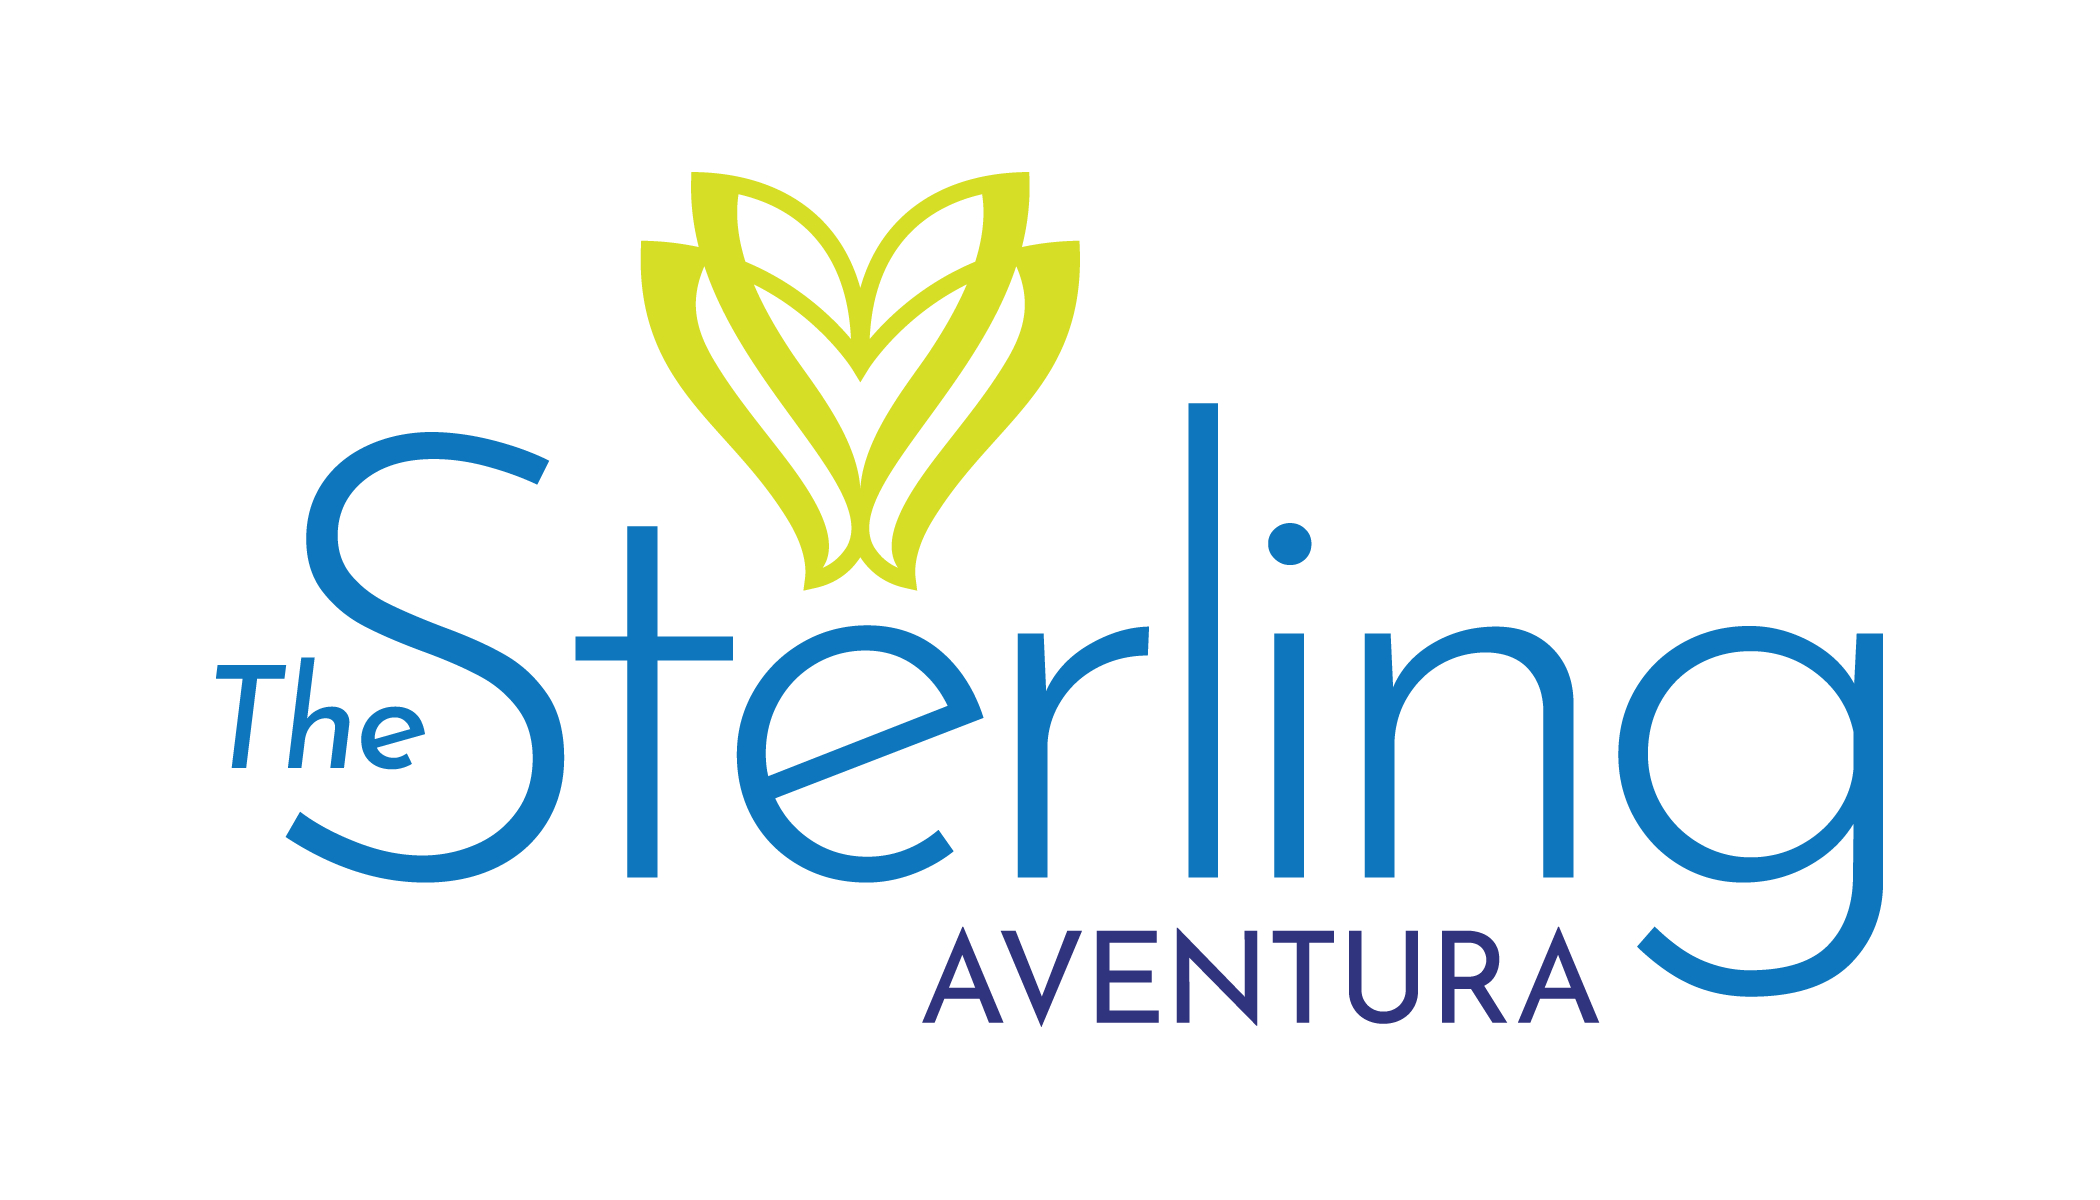 The Sterling Aventura